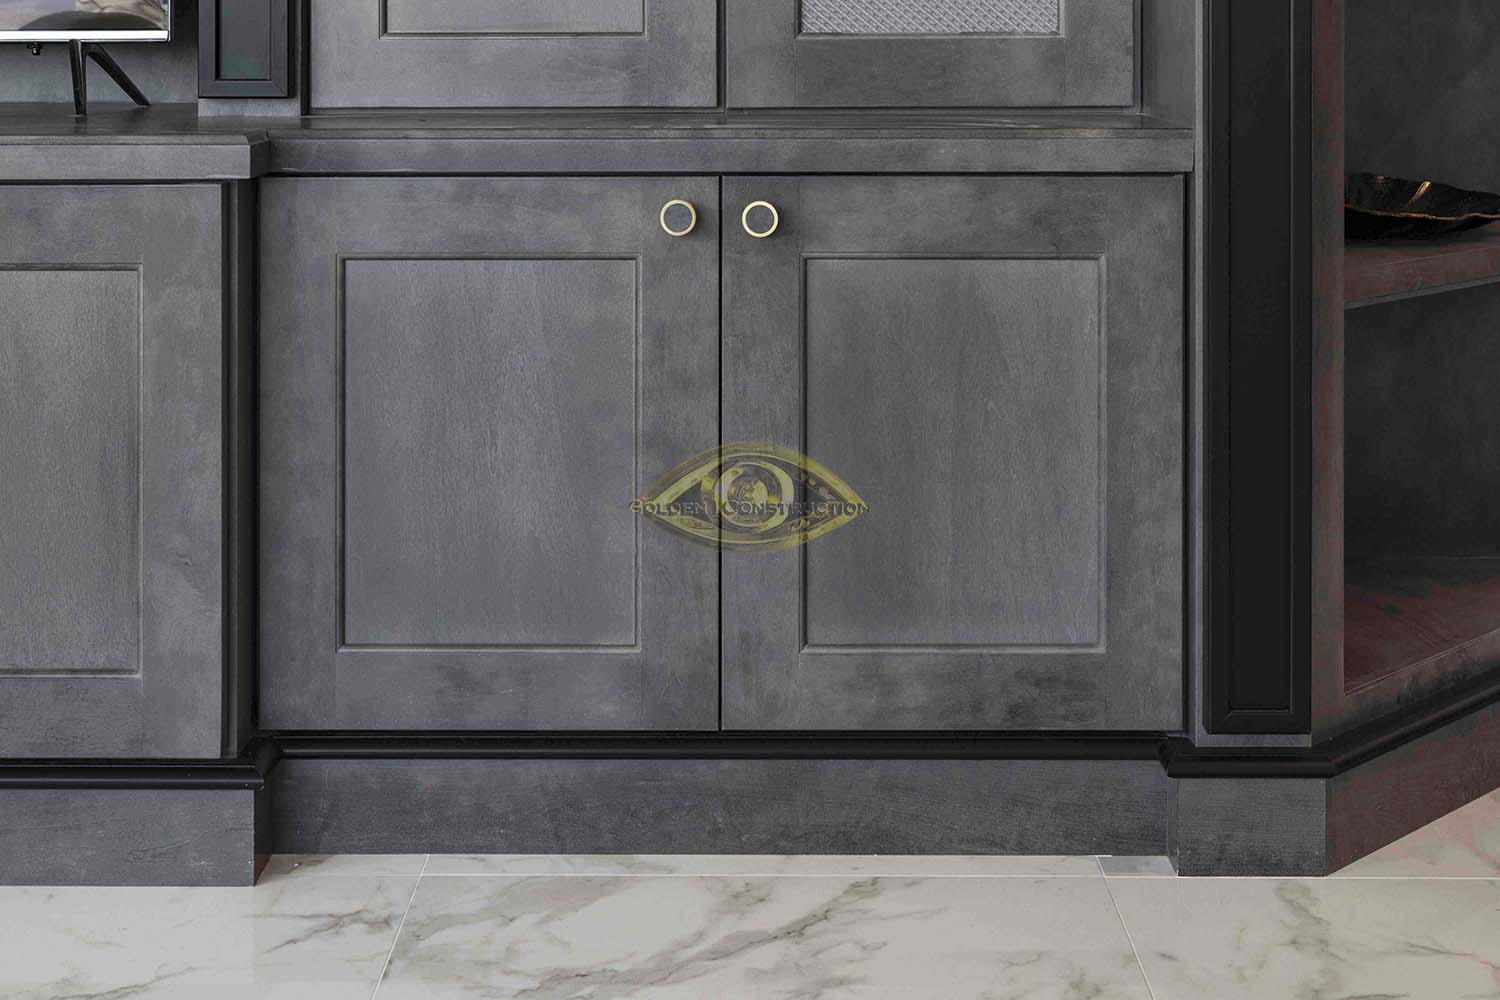 Custom Cabinets NYC - Kitchen Showrooms | Golden I Construction